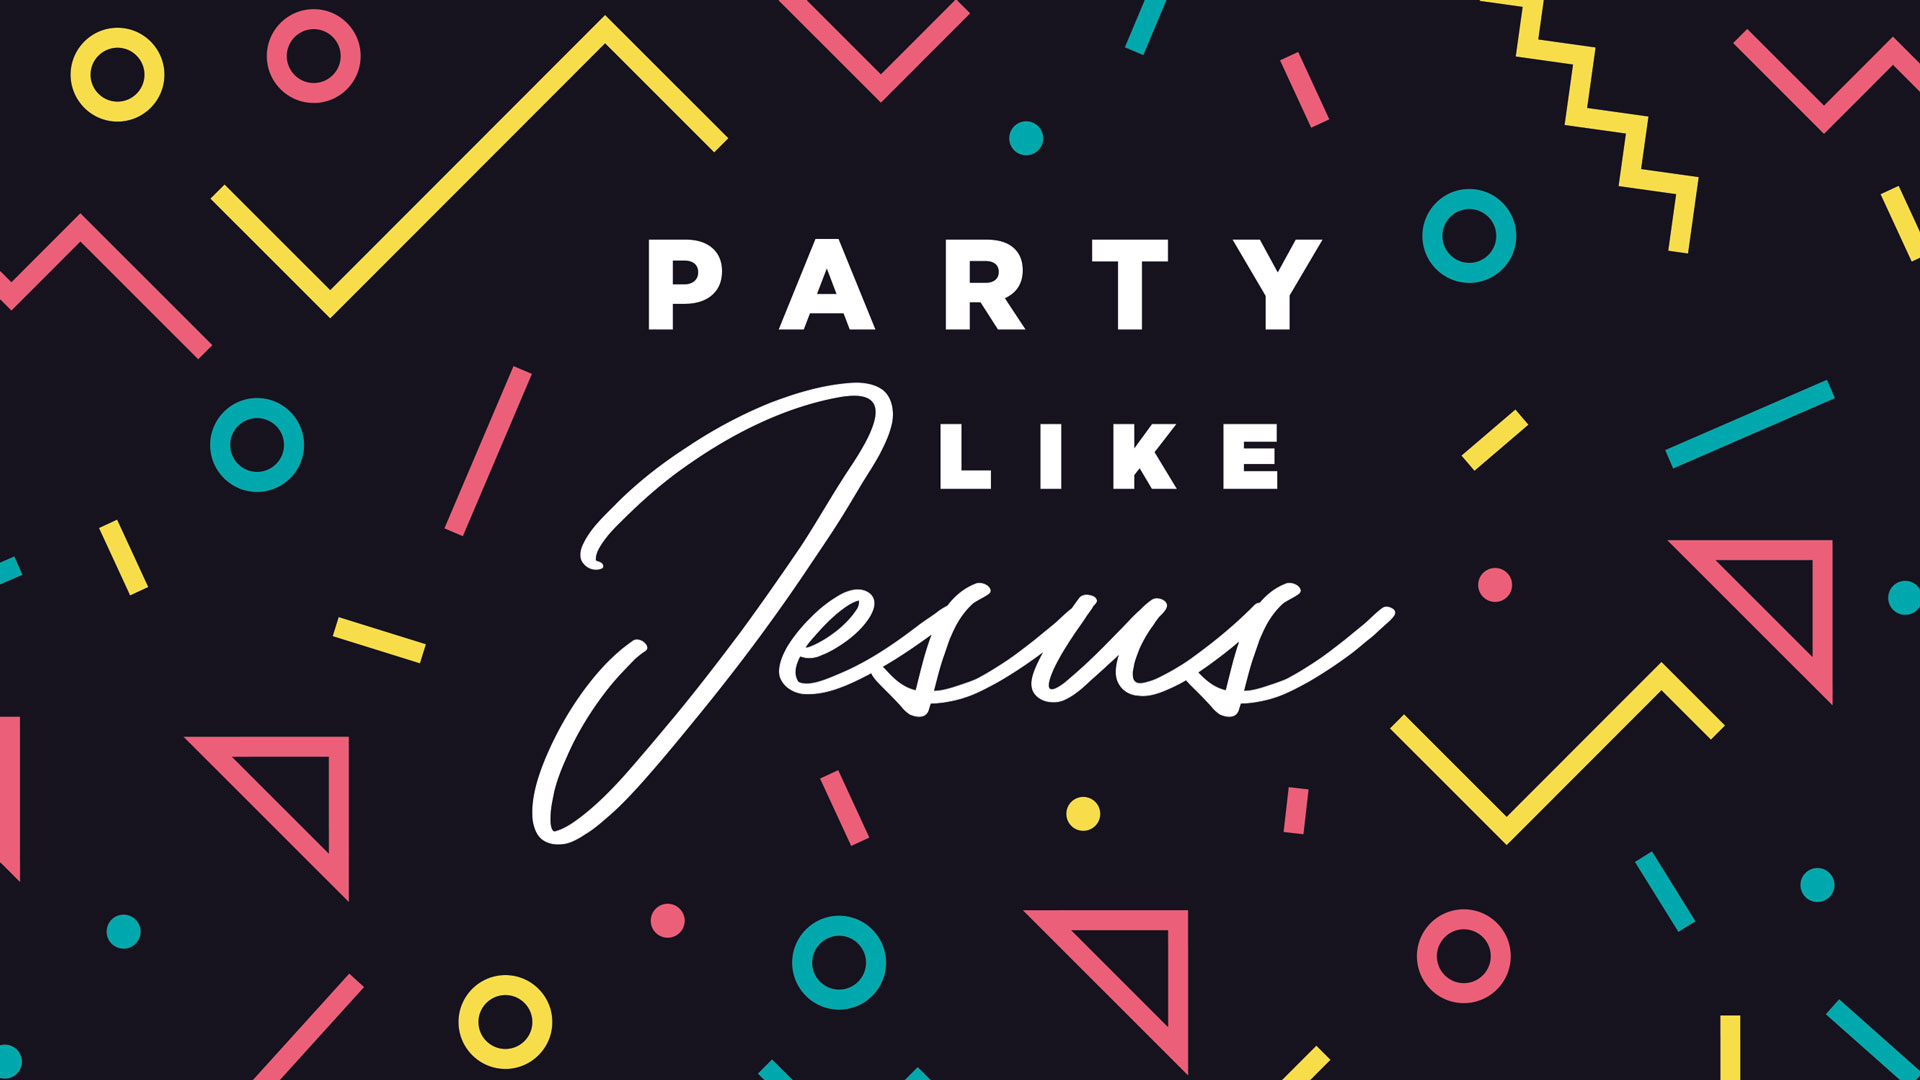 Party-Like-Jesus-no-subtitle.jpg